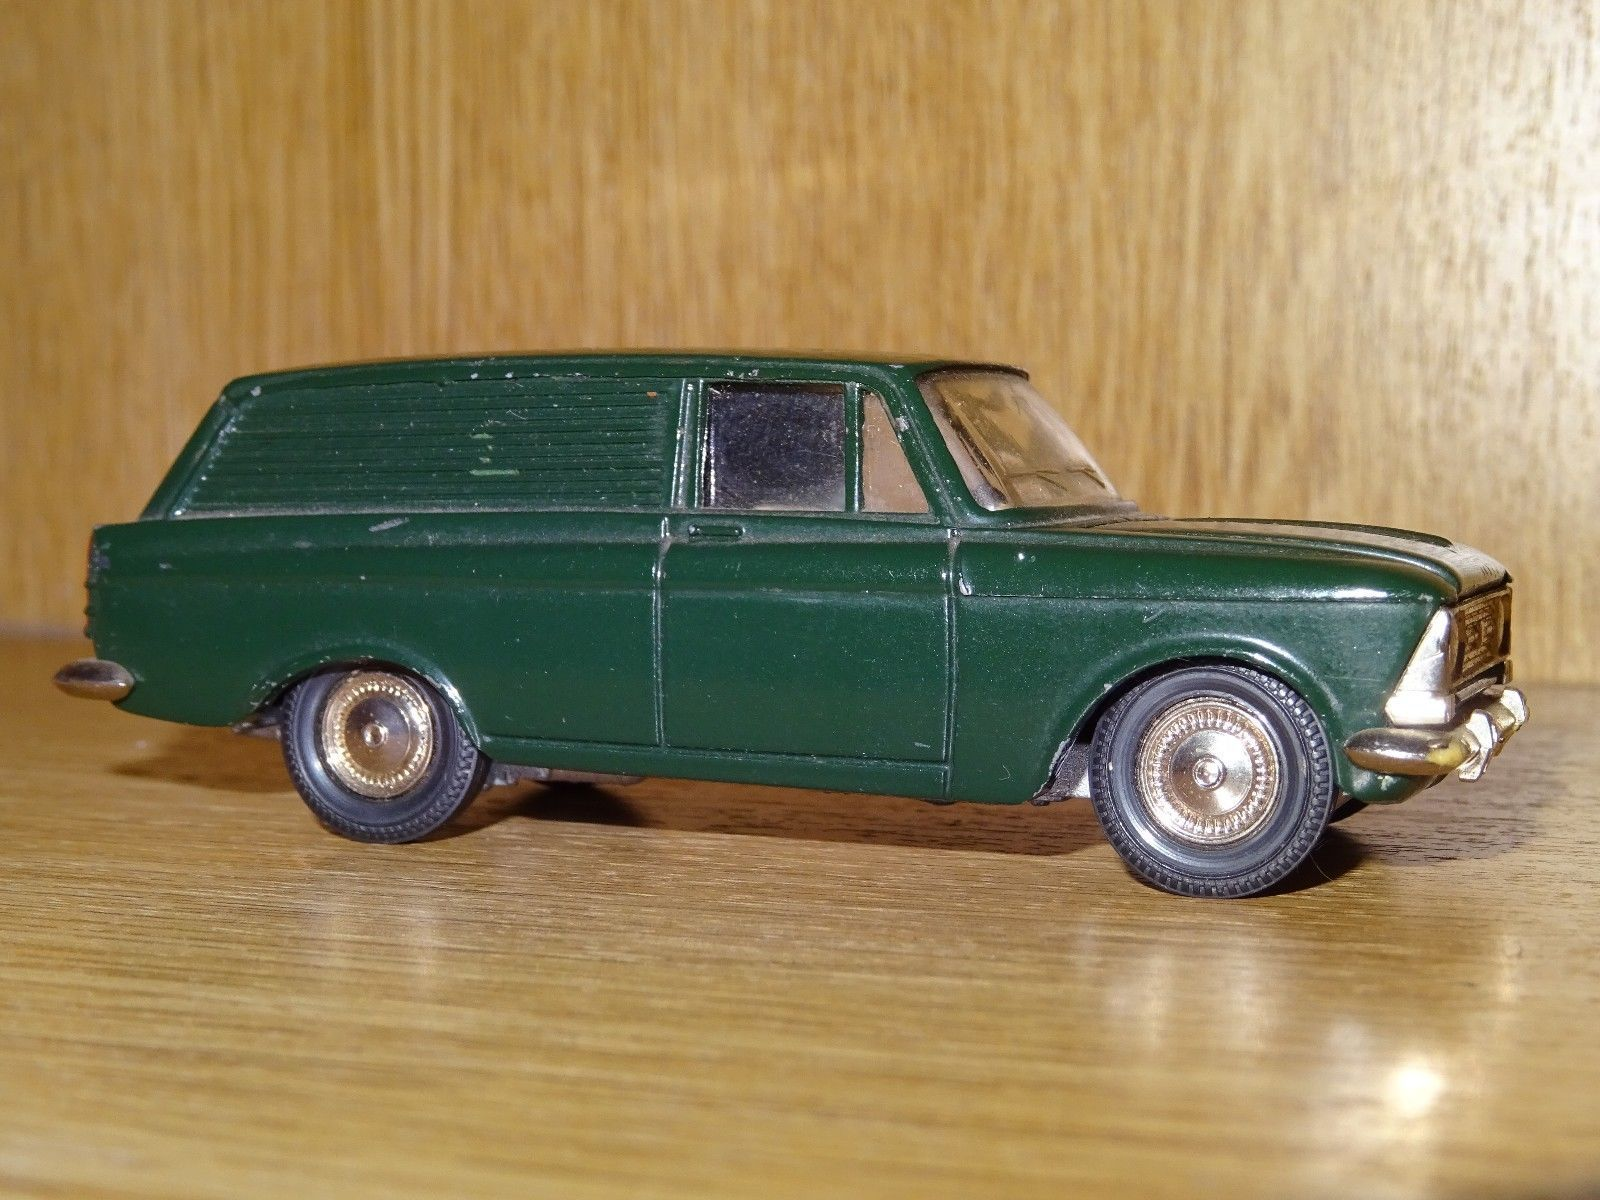 Ebay 1 Euro Ussr Moskvitch 433 Model A 5 Scale 1 43 In Novoexport Box Read